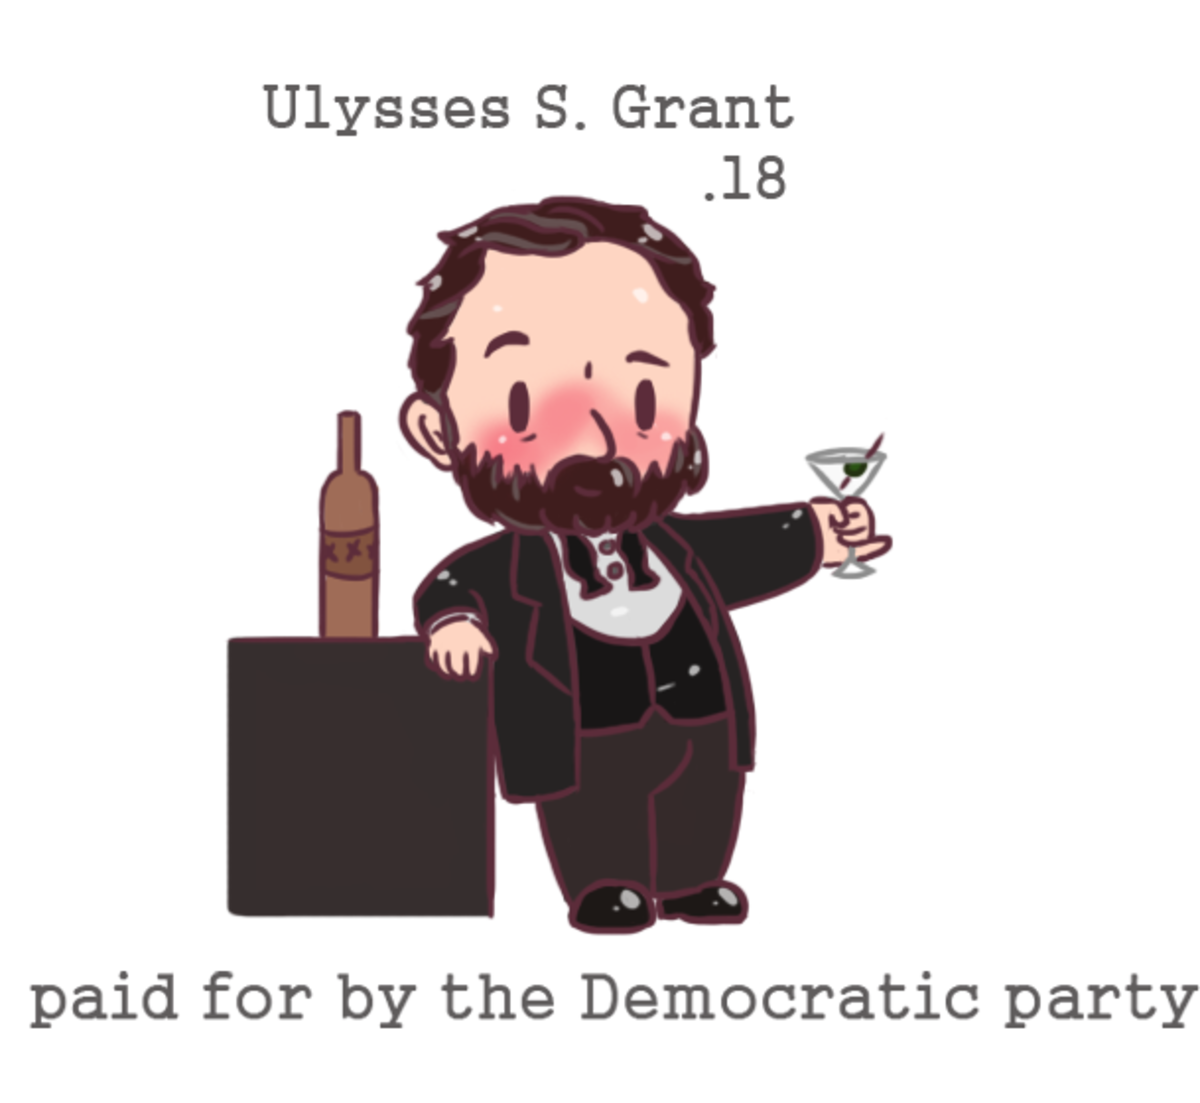 chibi Ulysses S. Grant. I finally have a sponsored chibi ya, this chibi President brought to you by the Democratic party. <3 (The thing about Grant being a b